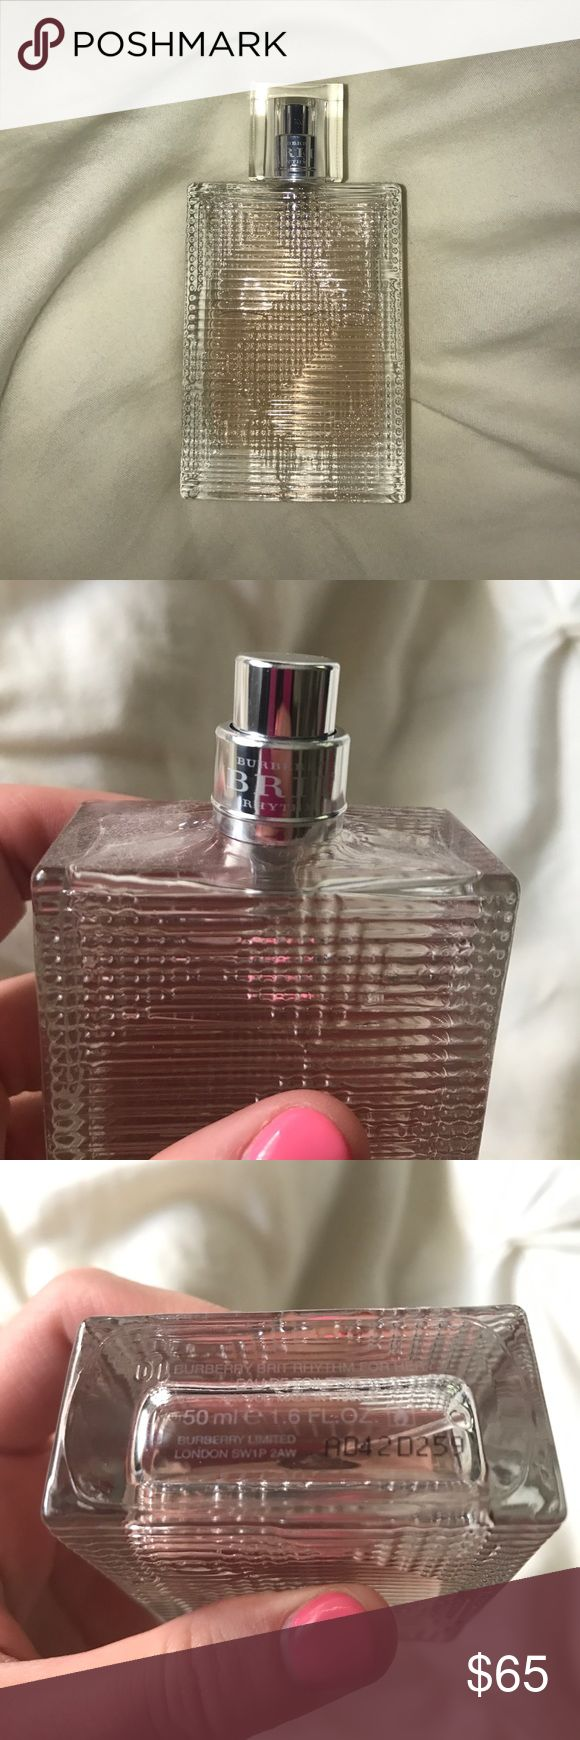 Burberry perfume Burberry Brit Rhythm for Her, barely used! Burberry Other